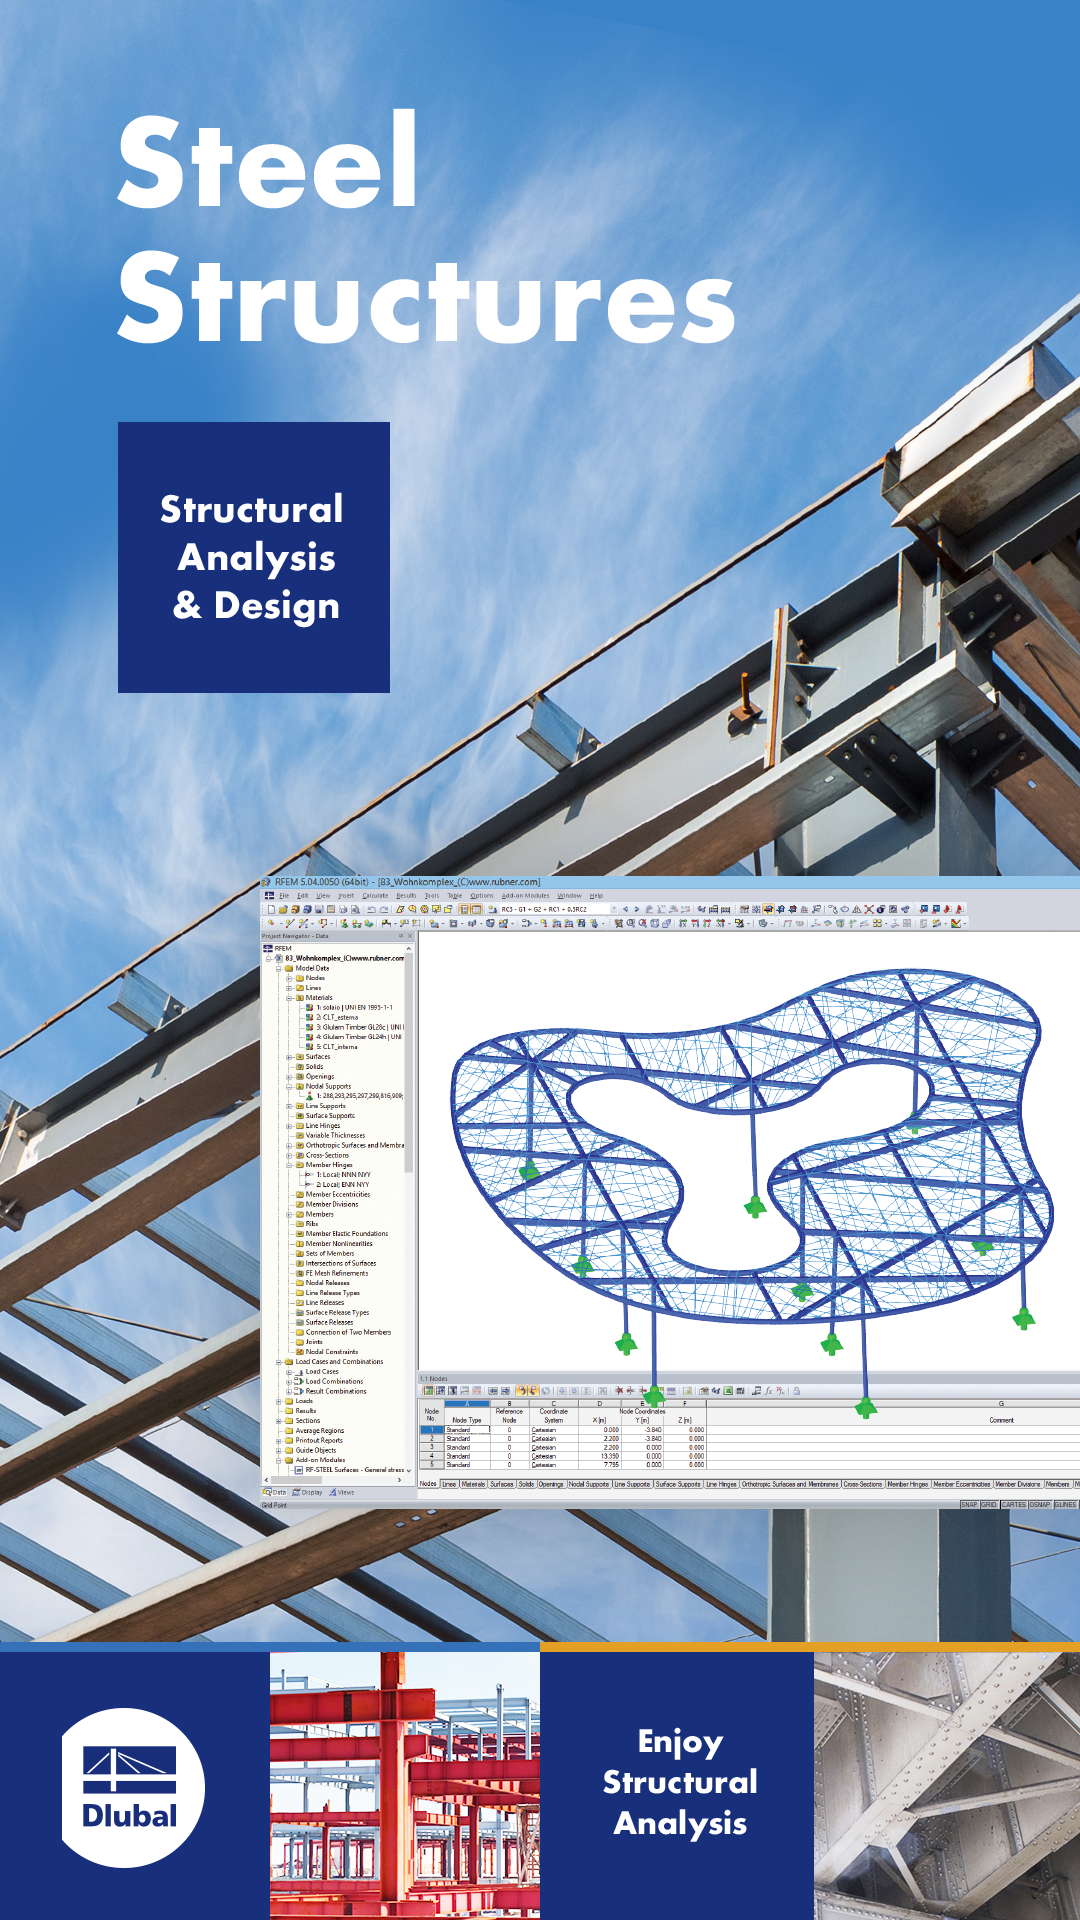 Steel Structural Analysis Design Software Structural Analysis Structural Engineering Civil Engineering Design